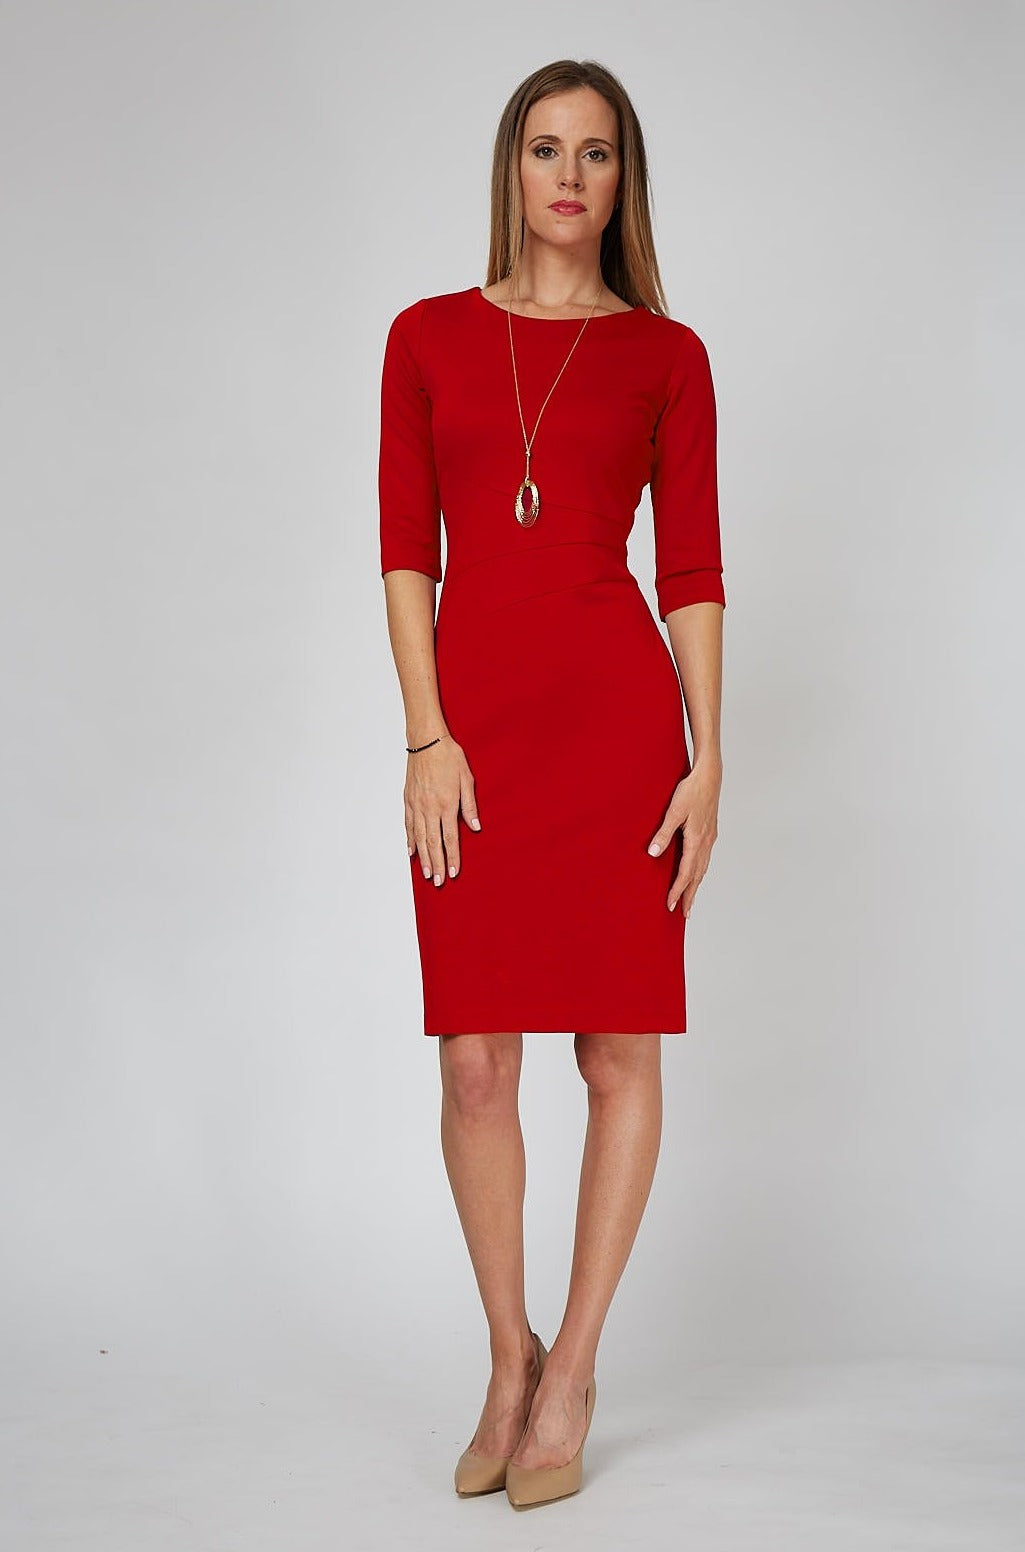 Lydia Dress - Bittersweet Red Pre-order